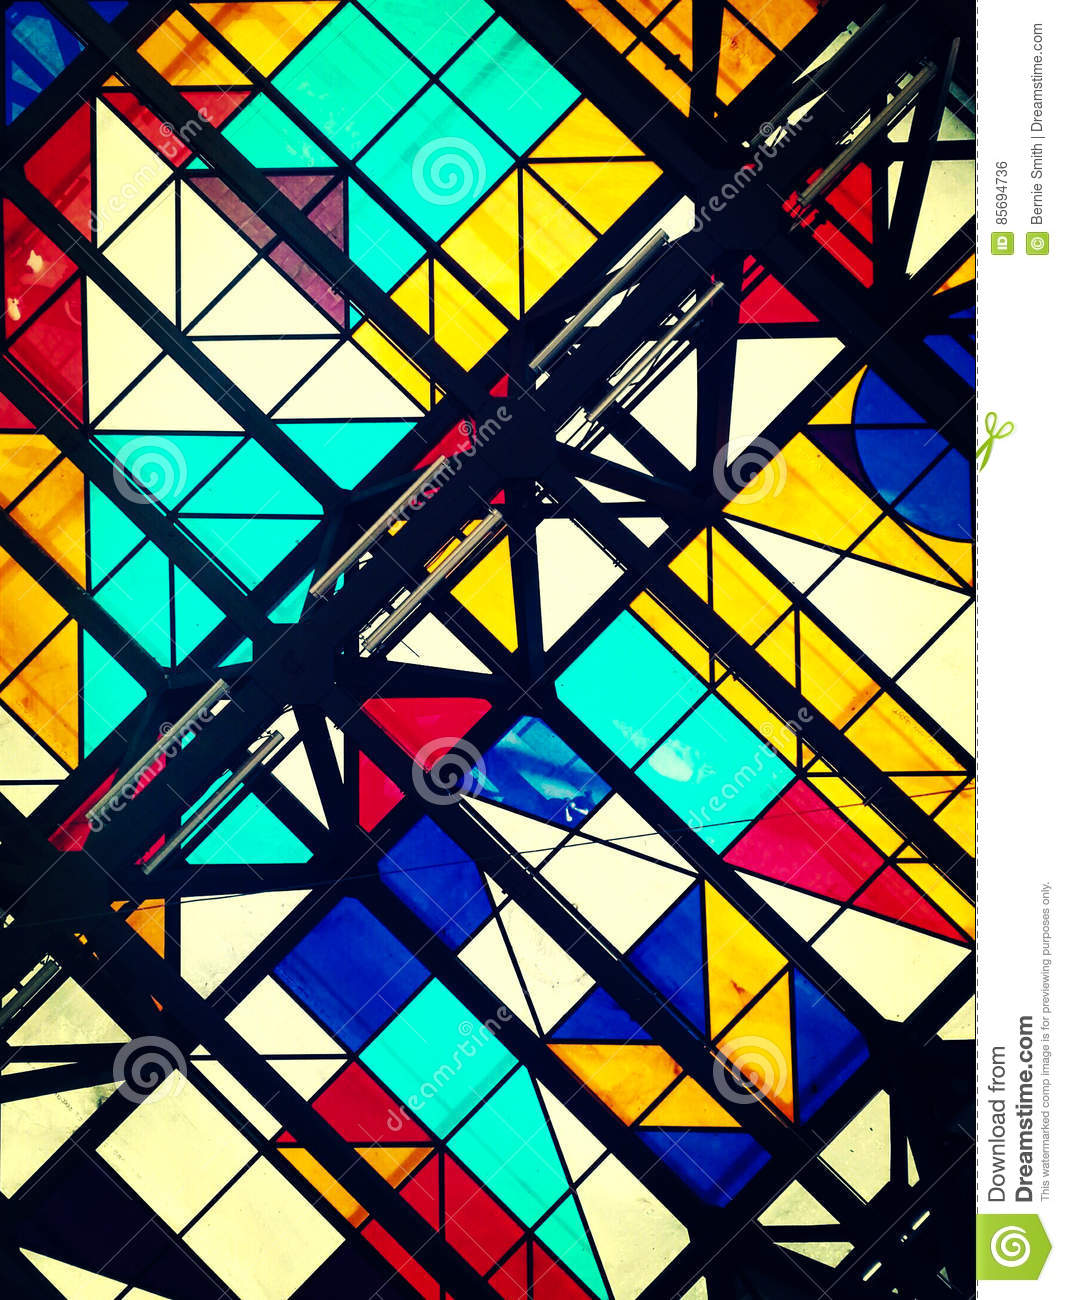 Color photo of glass ceiling with geometric shapes